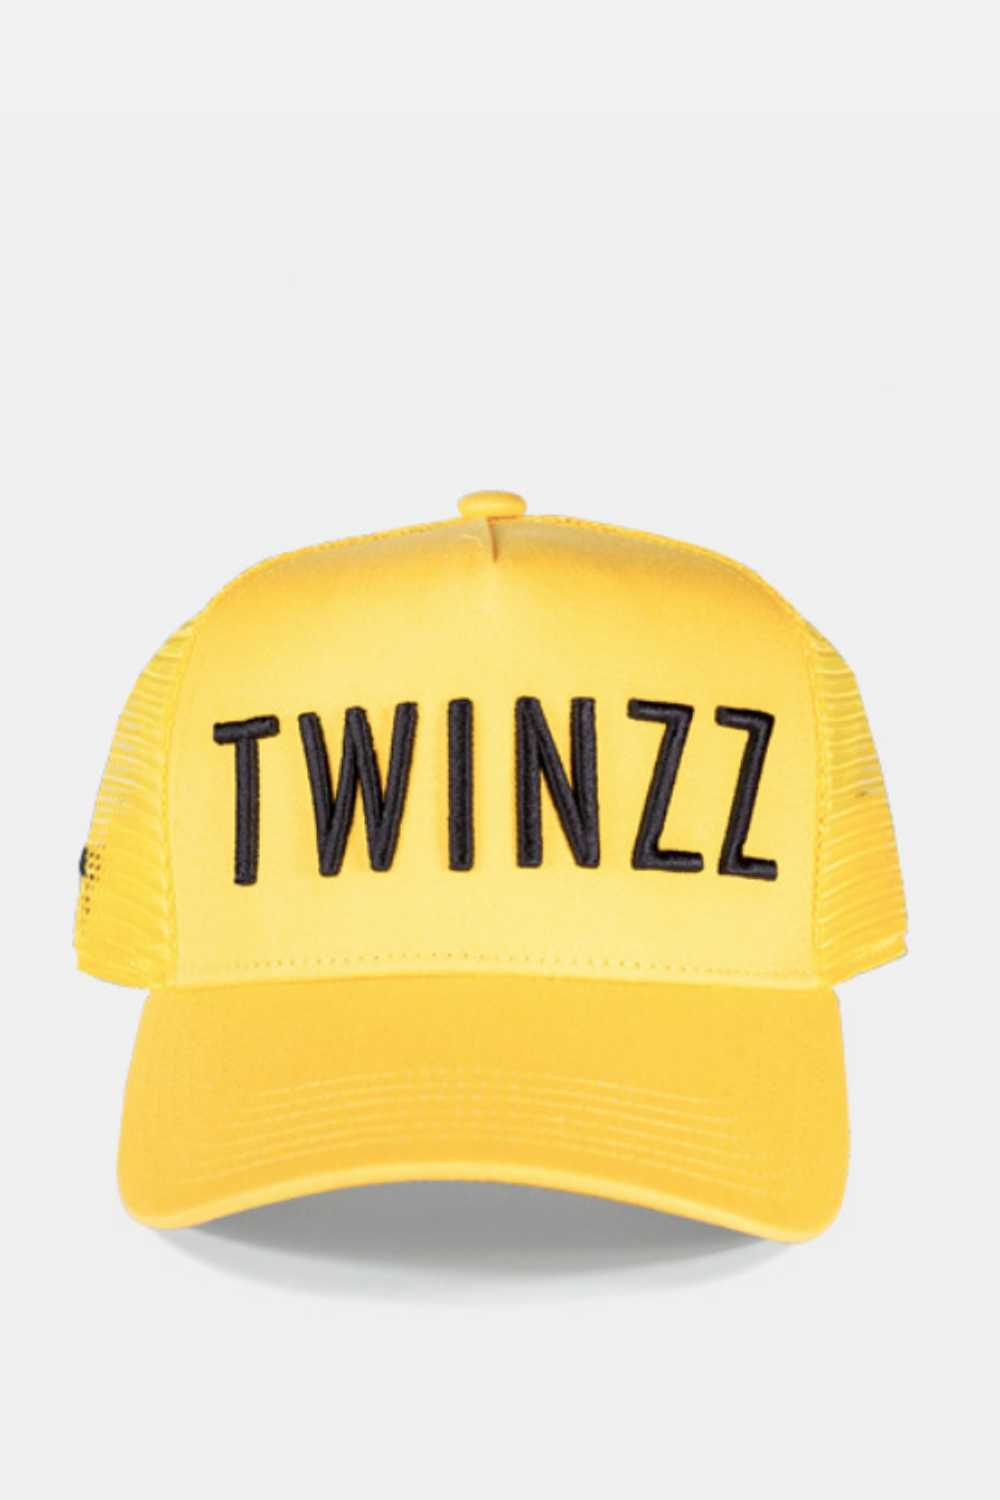 Twinzz 3D Mesh Trucker Cap - Yellow/Black - 1